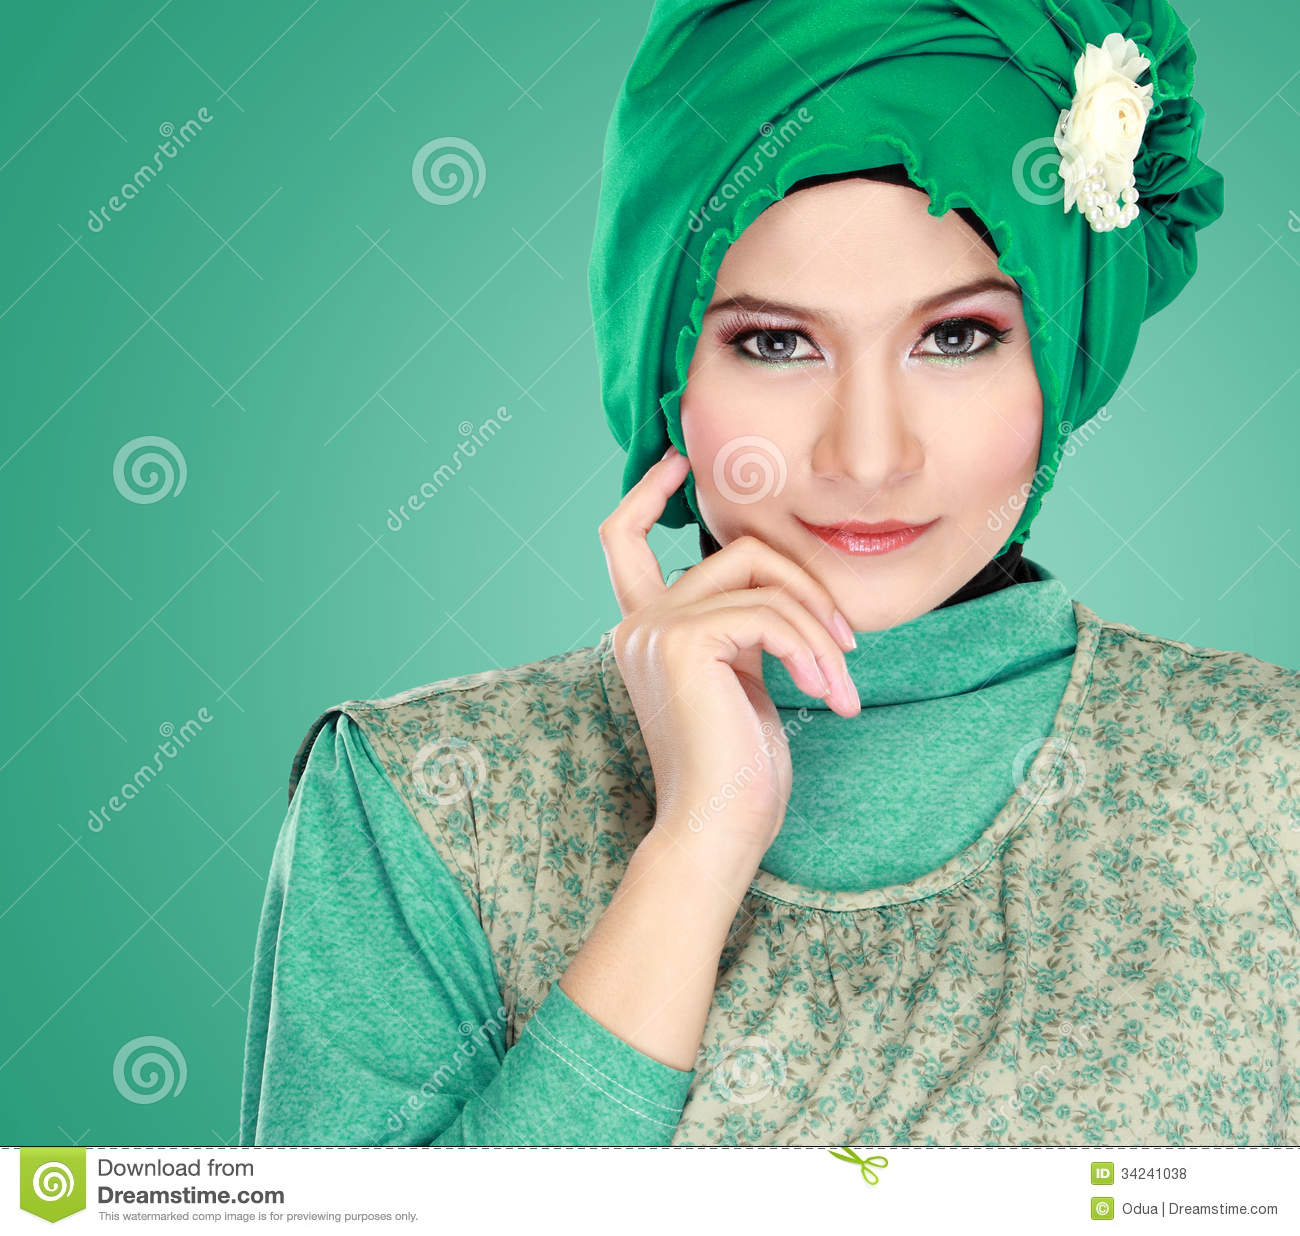 wisborough green single muslim girls Wisborough green is a village and civil parish in the chichester district of west sussex, england, 2 miles (32 km) west of billingshurst on the a272 road.